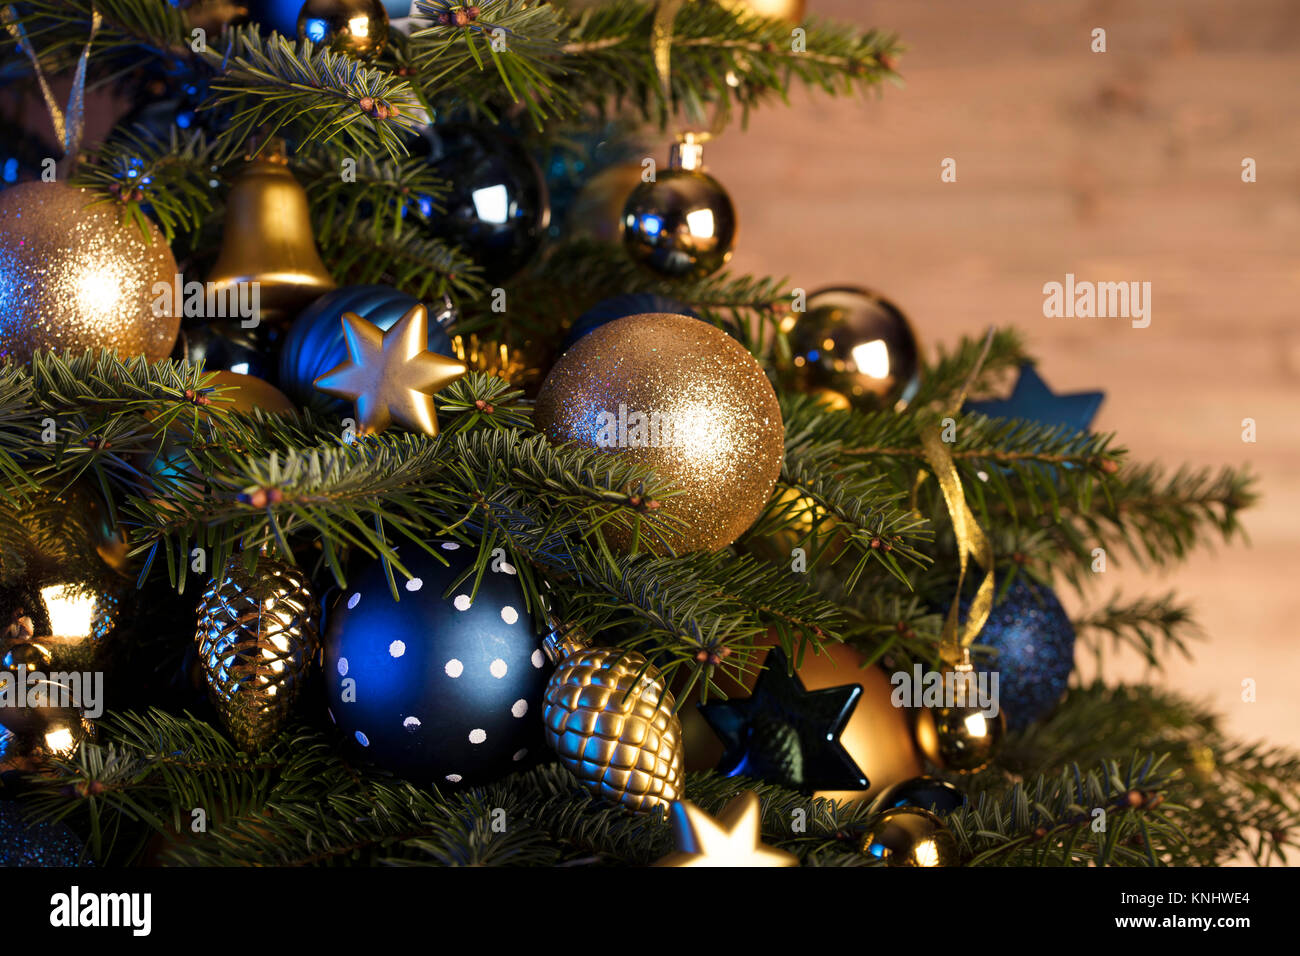 Christmas Decorations In Blue And Gold Aesthetics Rustic